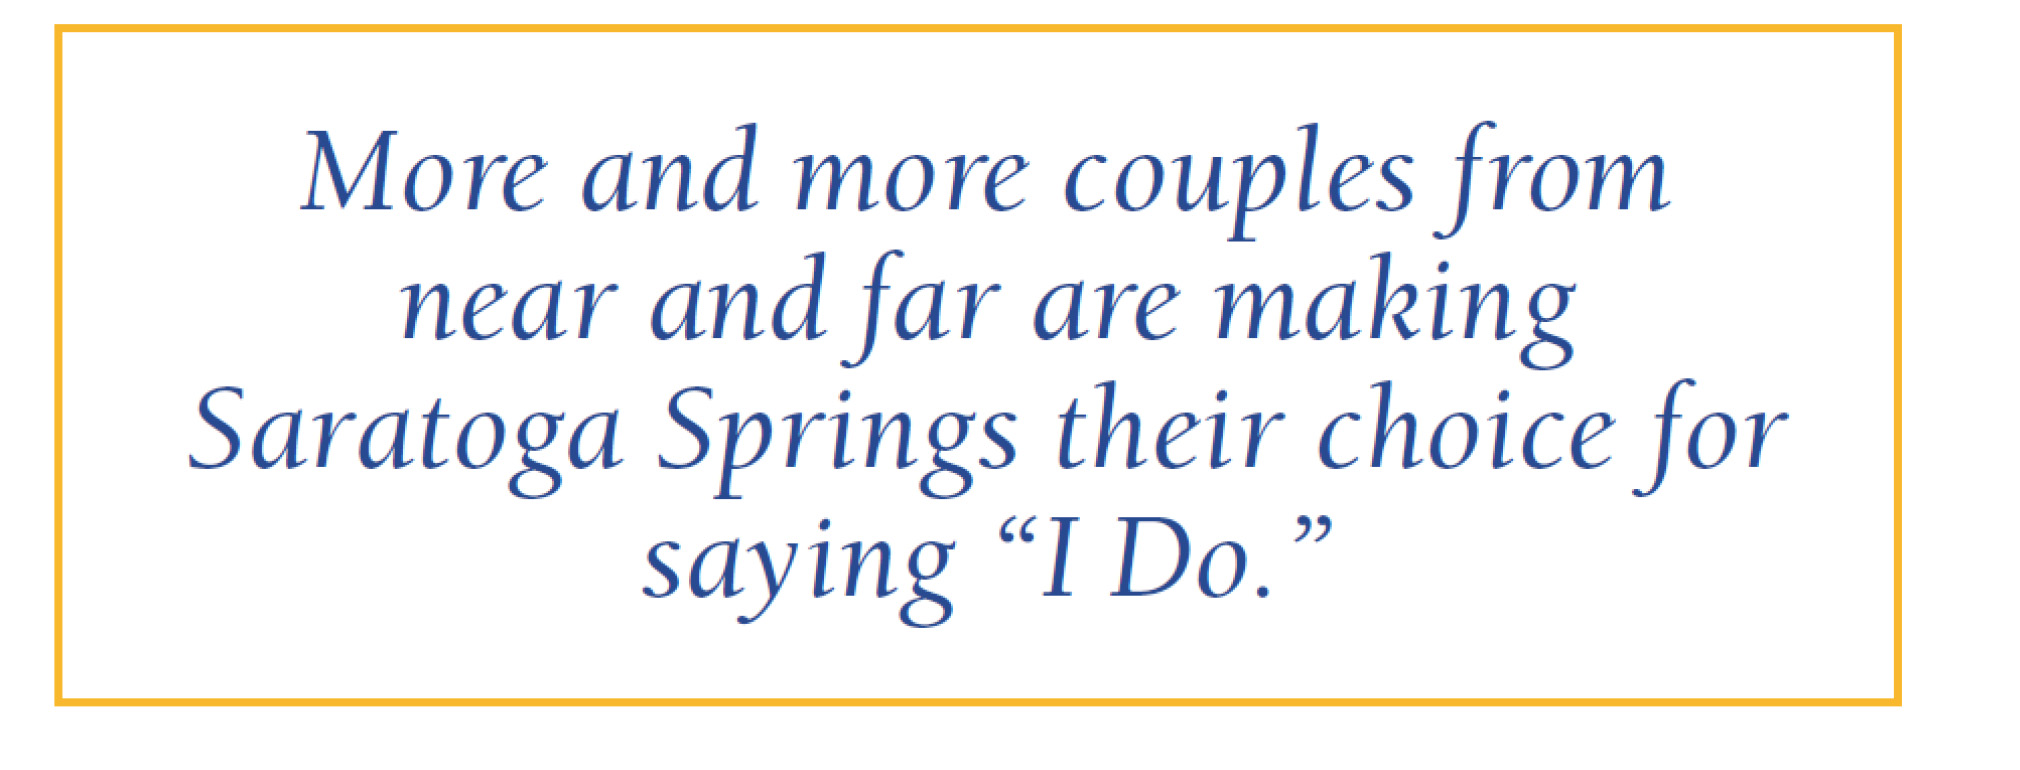 "More and more couples from near and far are making Saratoga Springs their choice for saying ""I Do."""